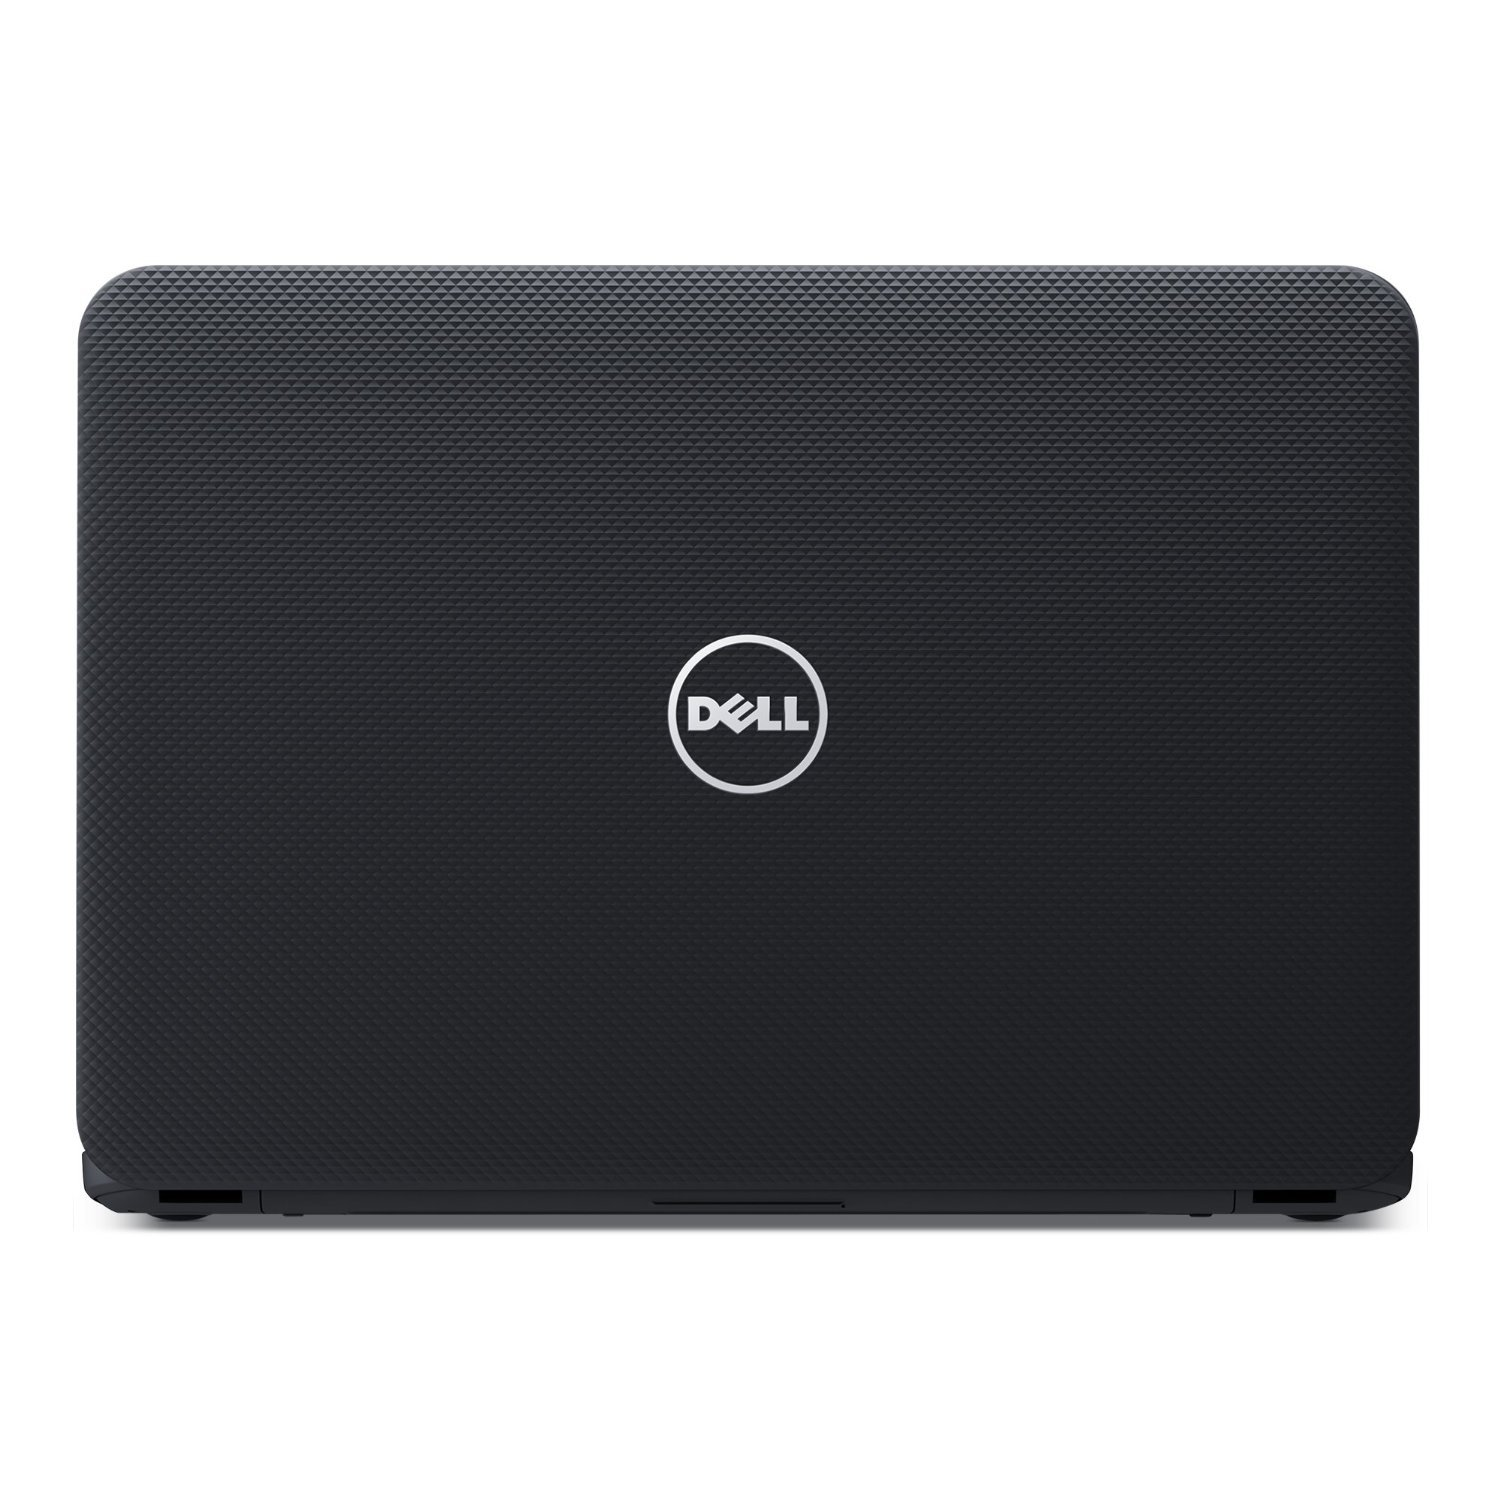 Dell-Inspiron-i15RV-6143BLK-15-6-Touchscreen-Laptop-4GB-500GB-Windows-8-Black-Matte-with-Textured-Finish